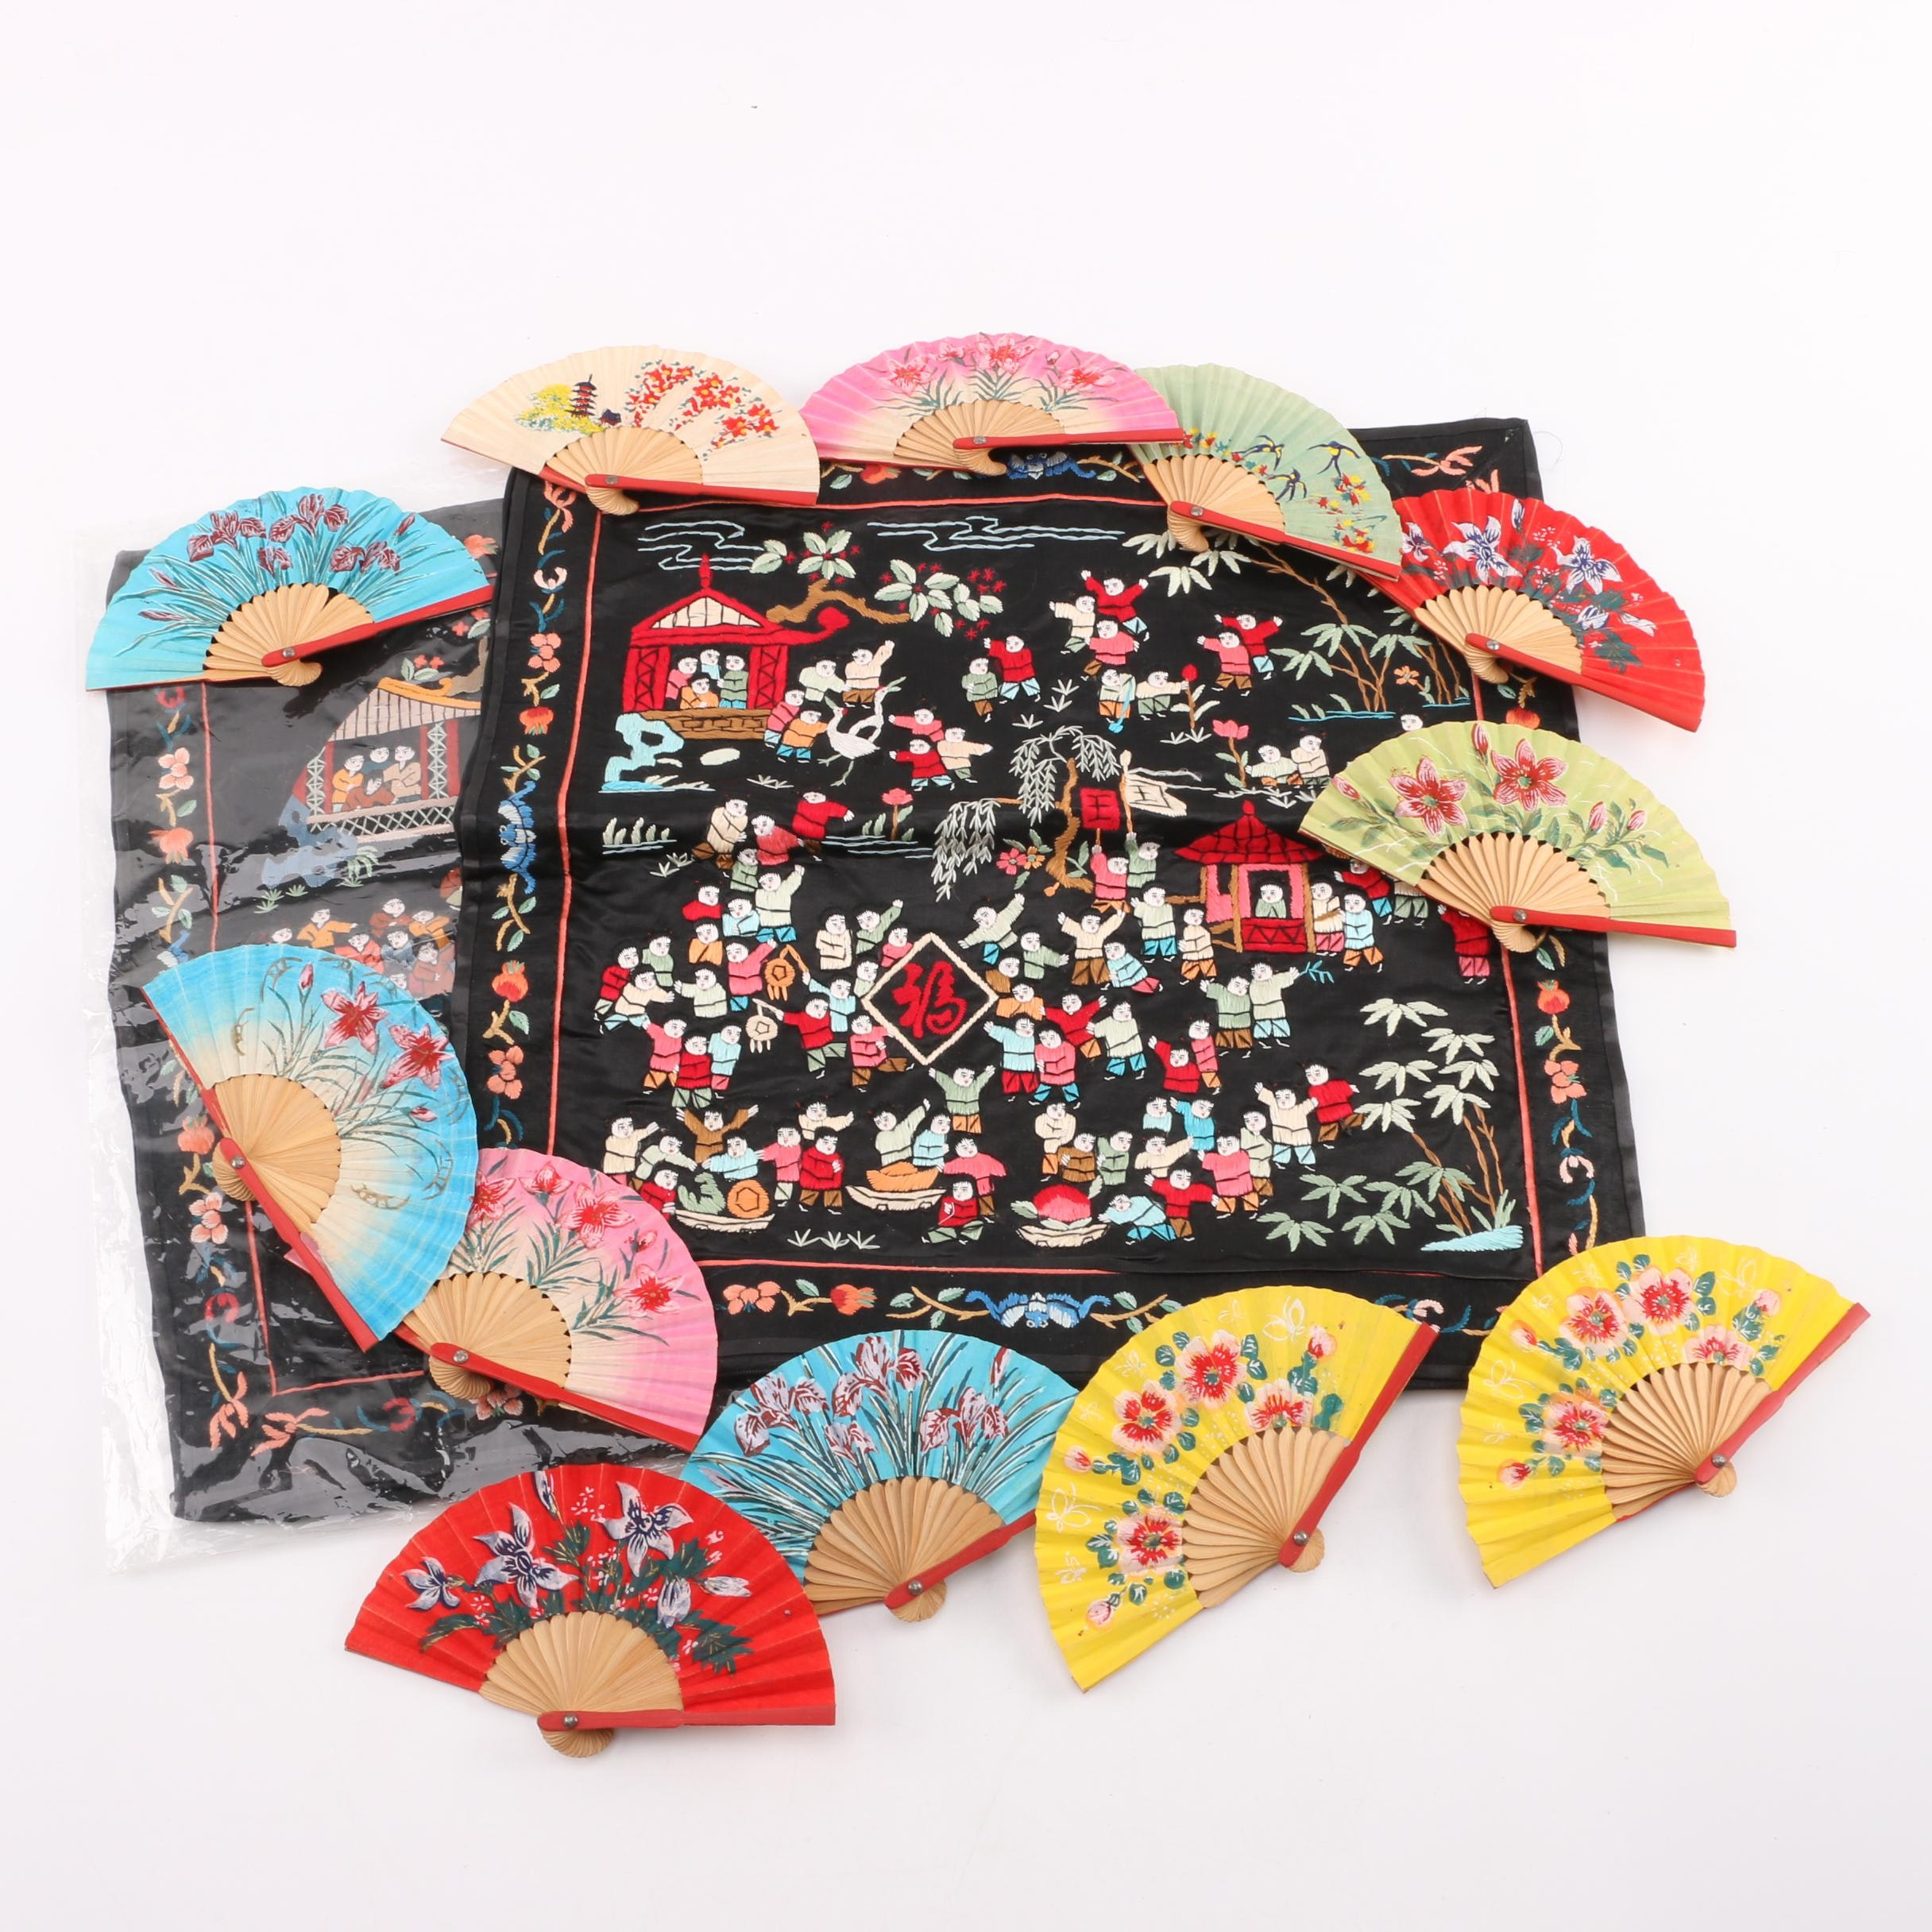 Chinese Embroidered Silk Pillow Covers with Paper Fans